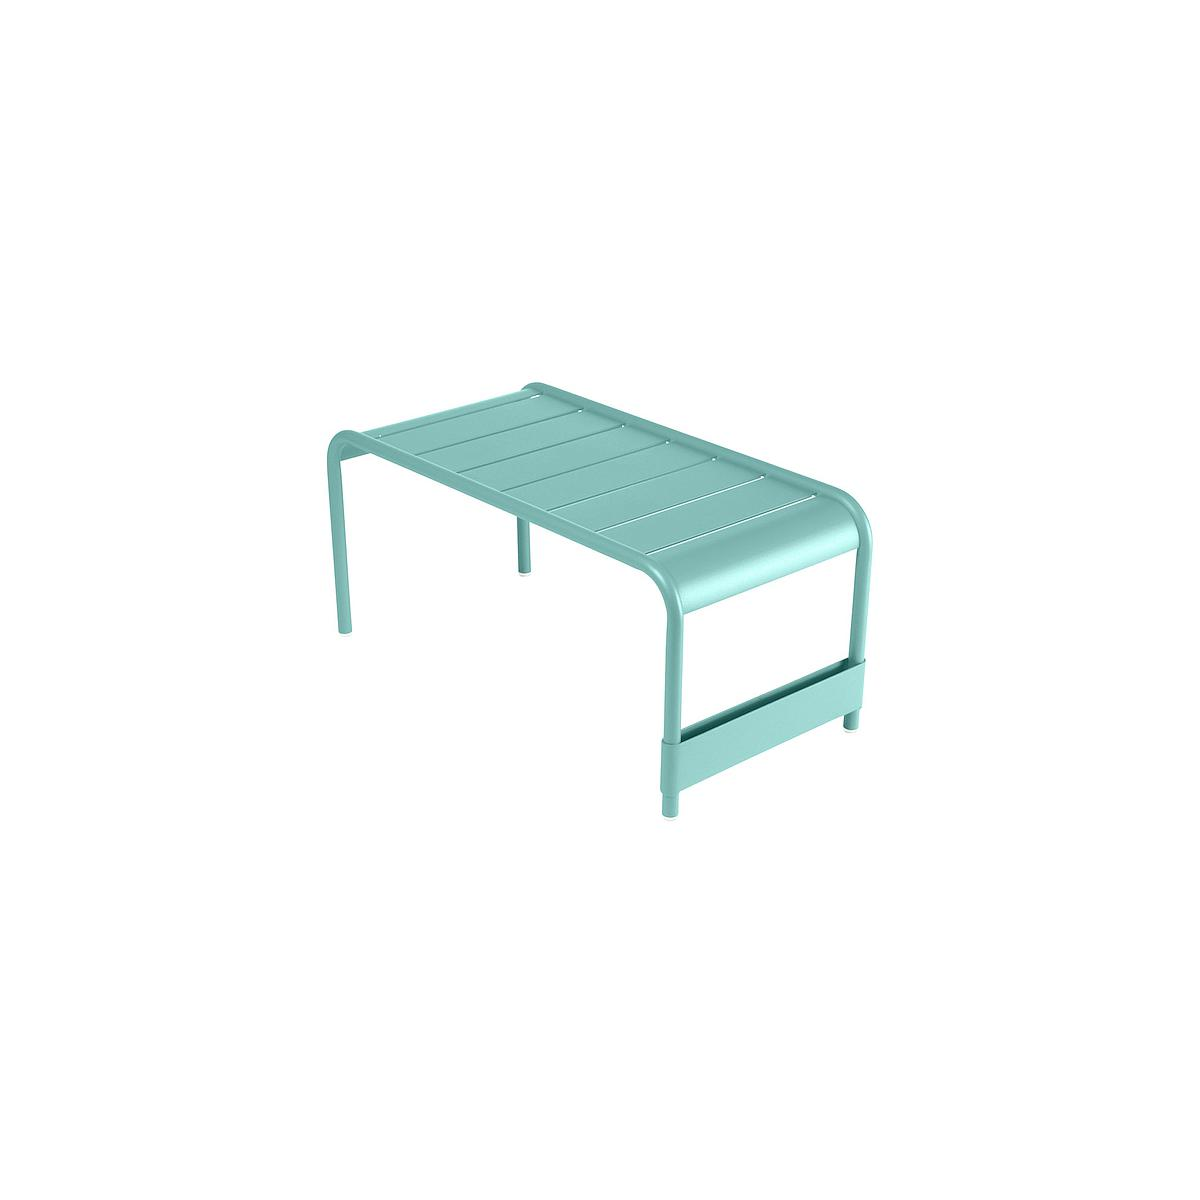 LUXEMBOURG by Fermob Grande table basse lagune